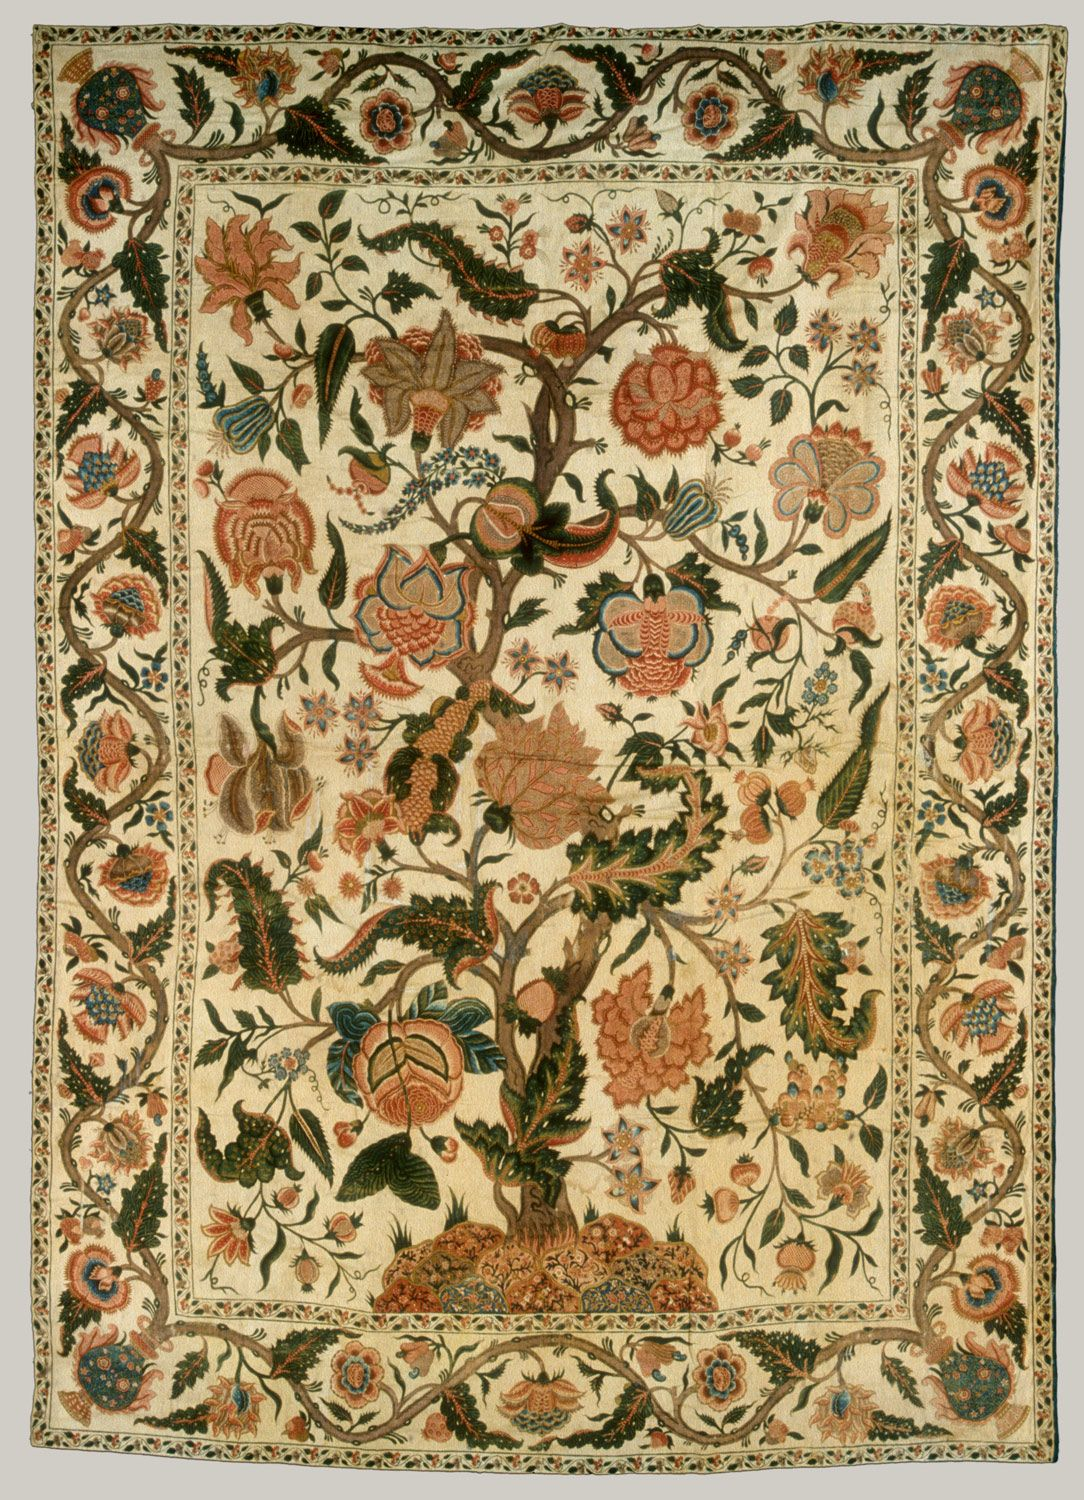 Bed Cover (Palampore) Indian textiles, Chintz fabric